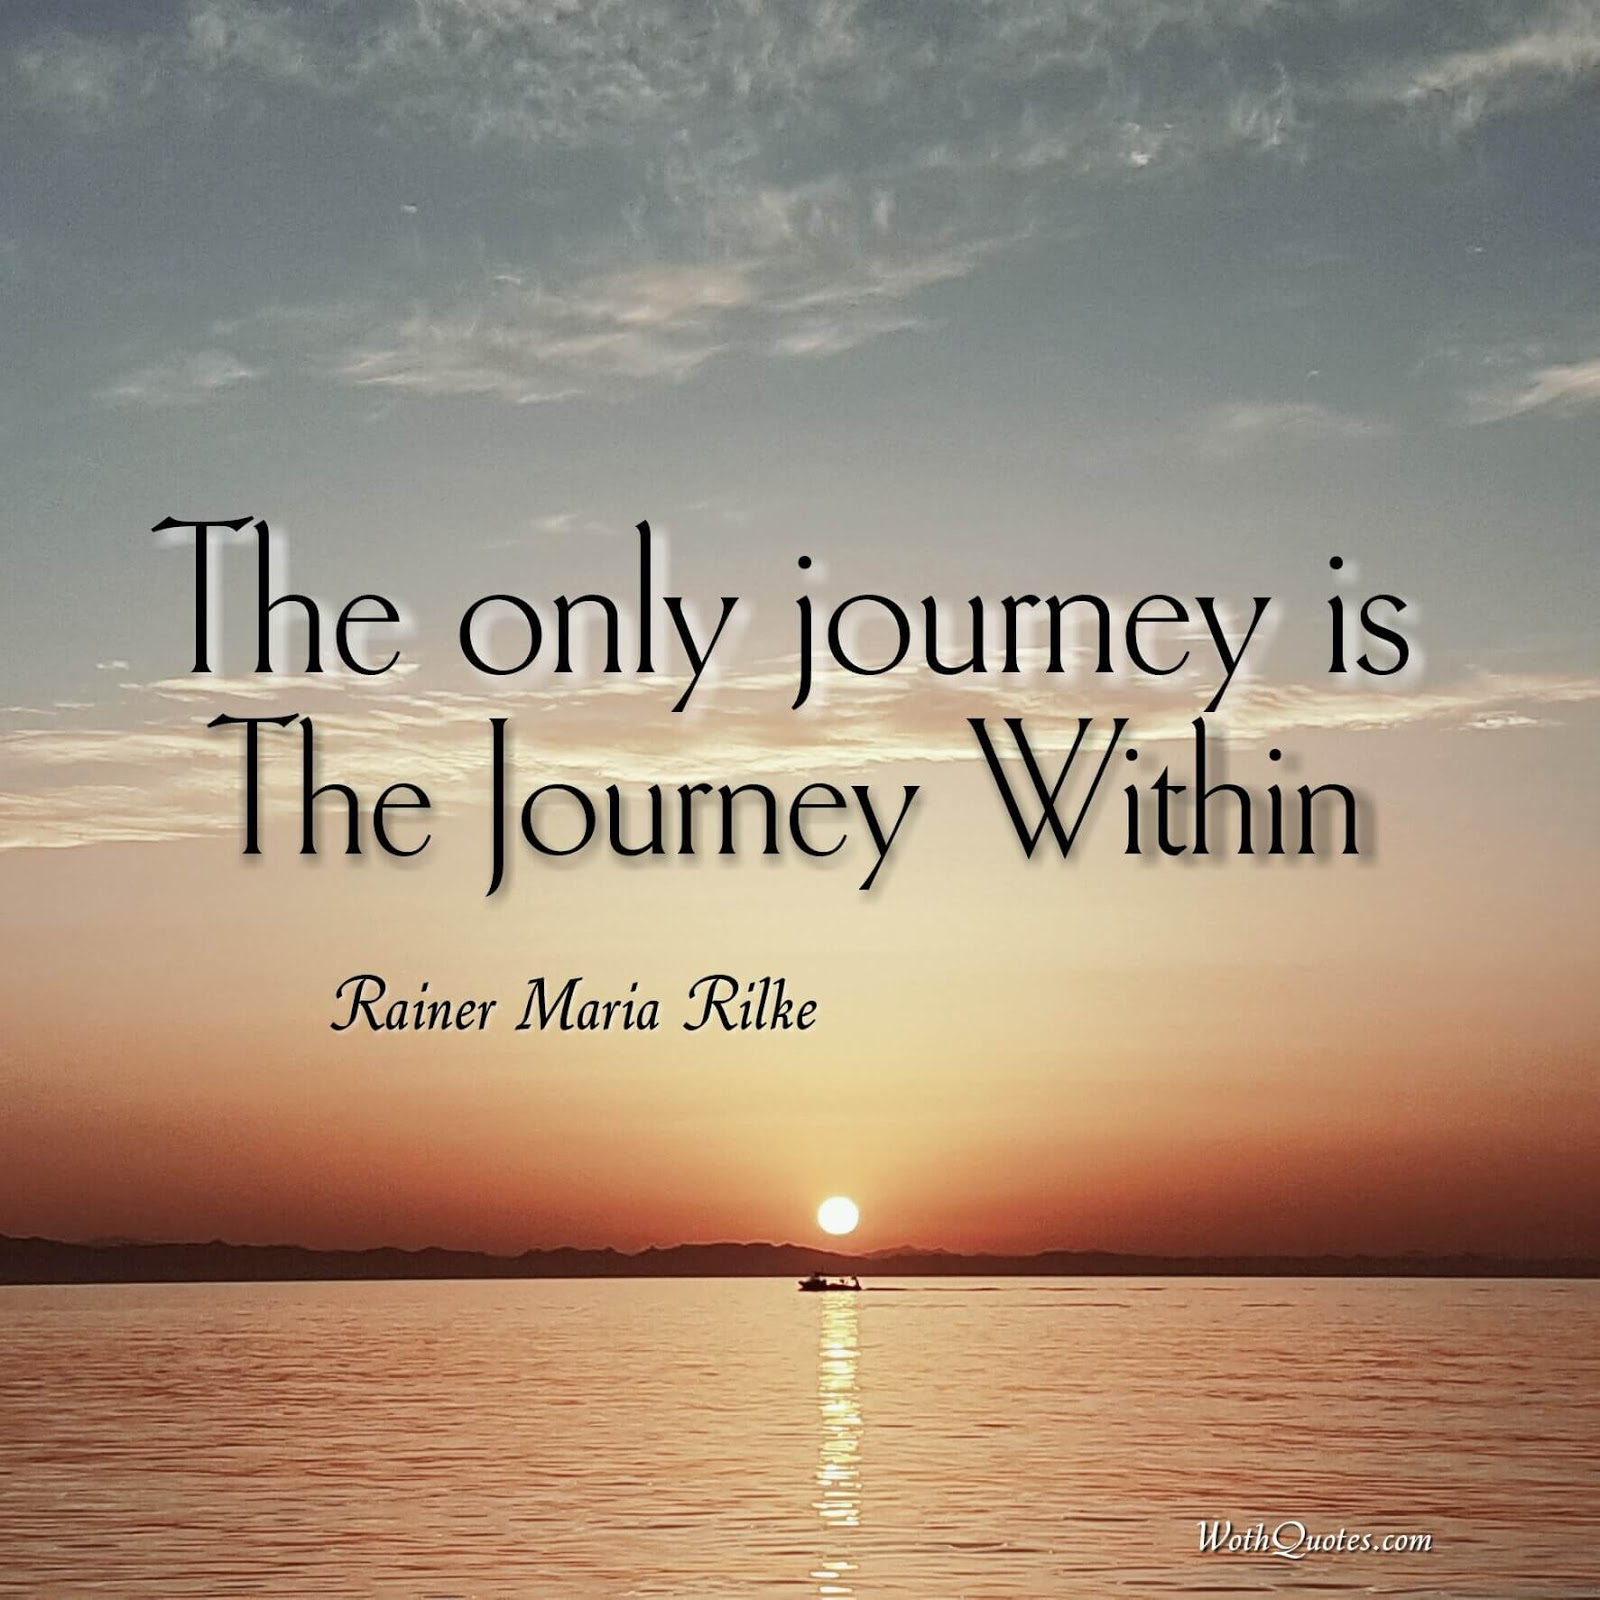 Quotes Life Journey Journey Quotes  Wisdom Of Life Journeys  Wothquotes Collection